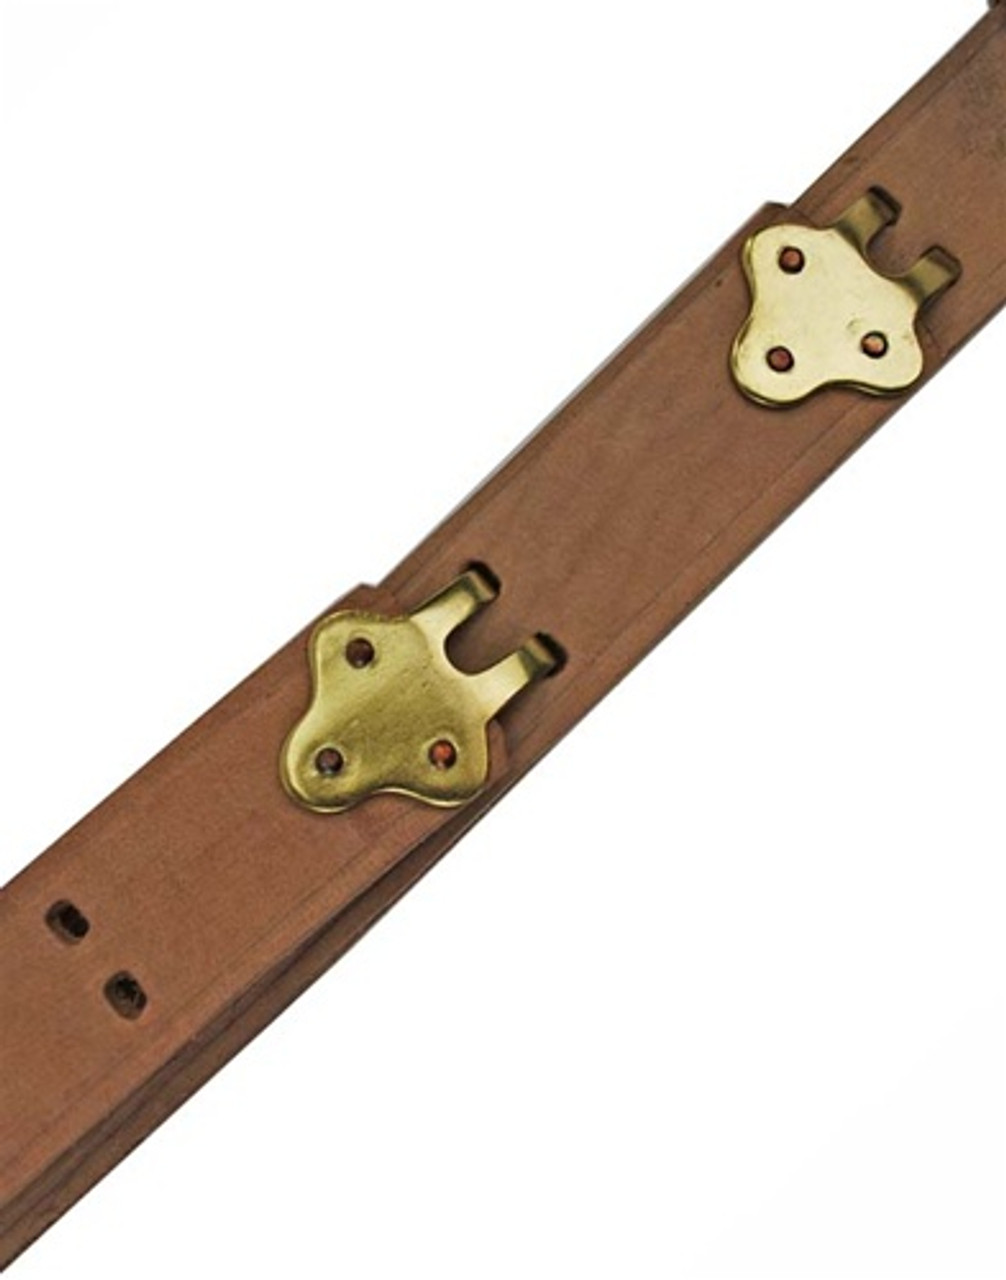 M1 Garand/Springfield 1907 Pattern Leather Sling - Brass Hardware from Hessen Antique